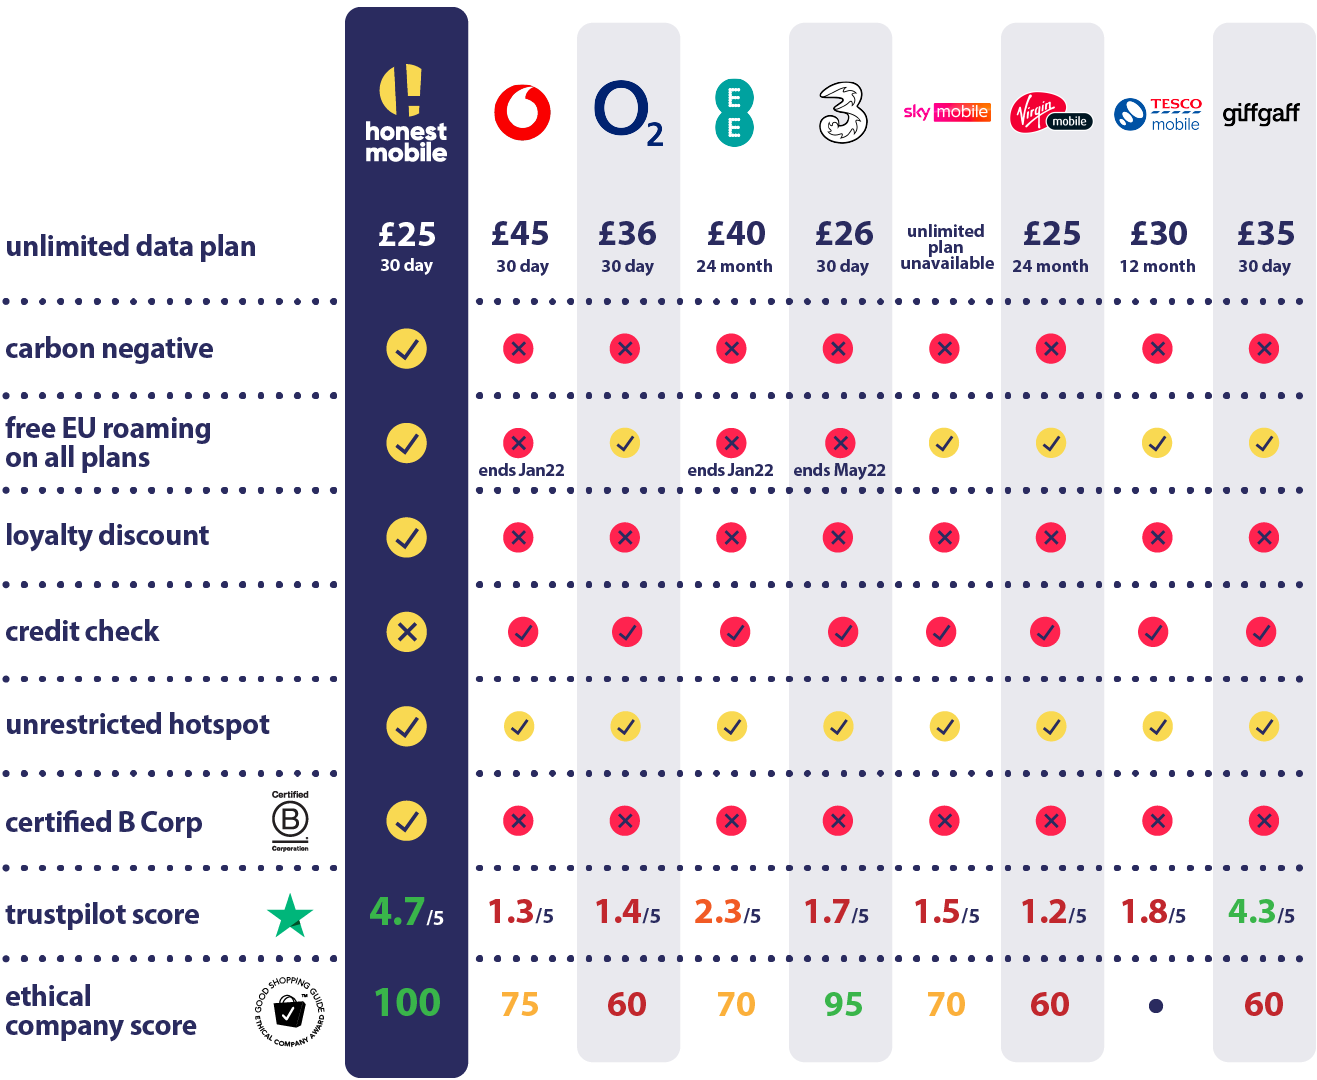 mobile network comparison table comparing honest mobile to other UK mobile networks